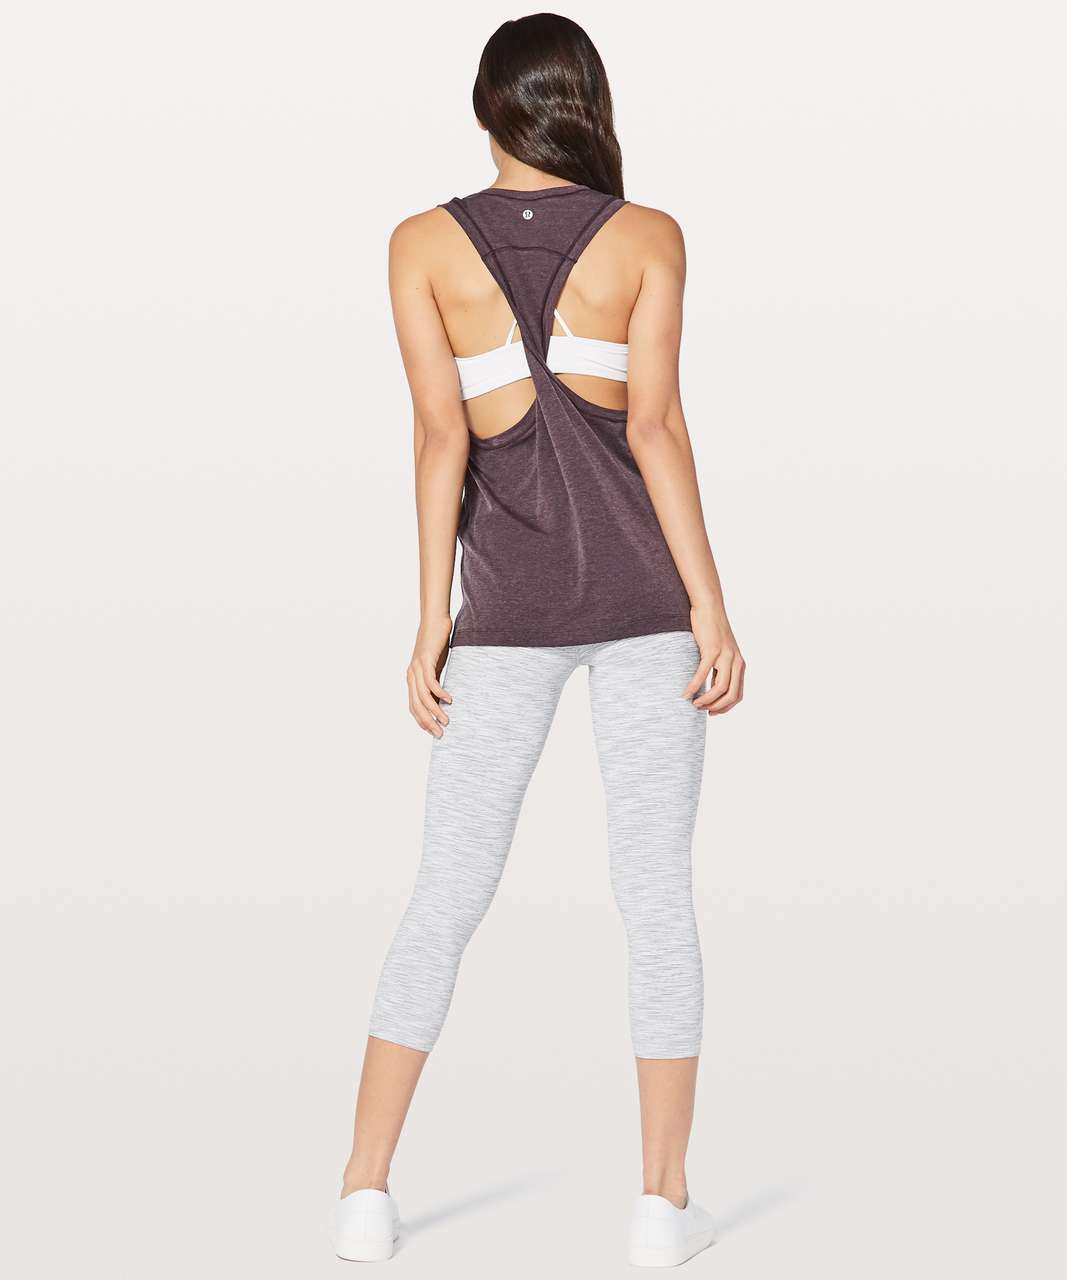 Lululemon See You In Savasana Tank - Heathered Black Cherry